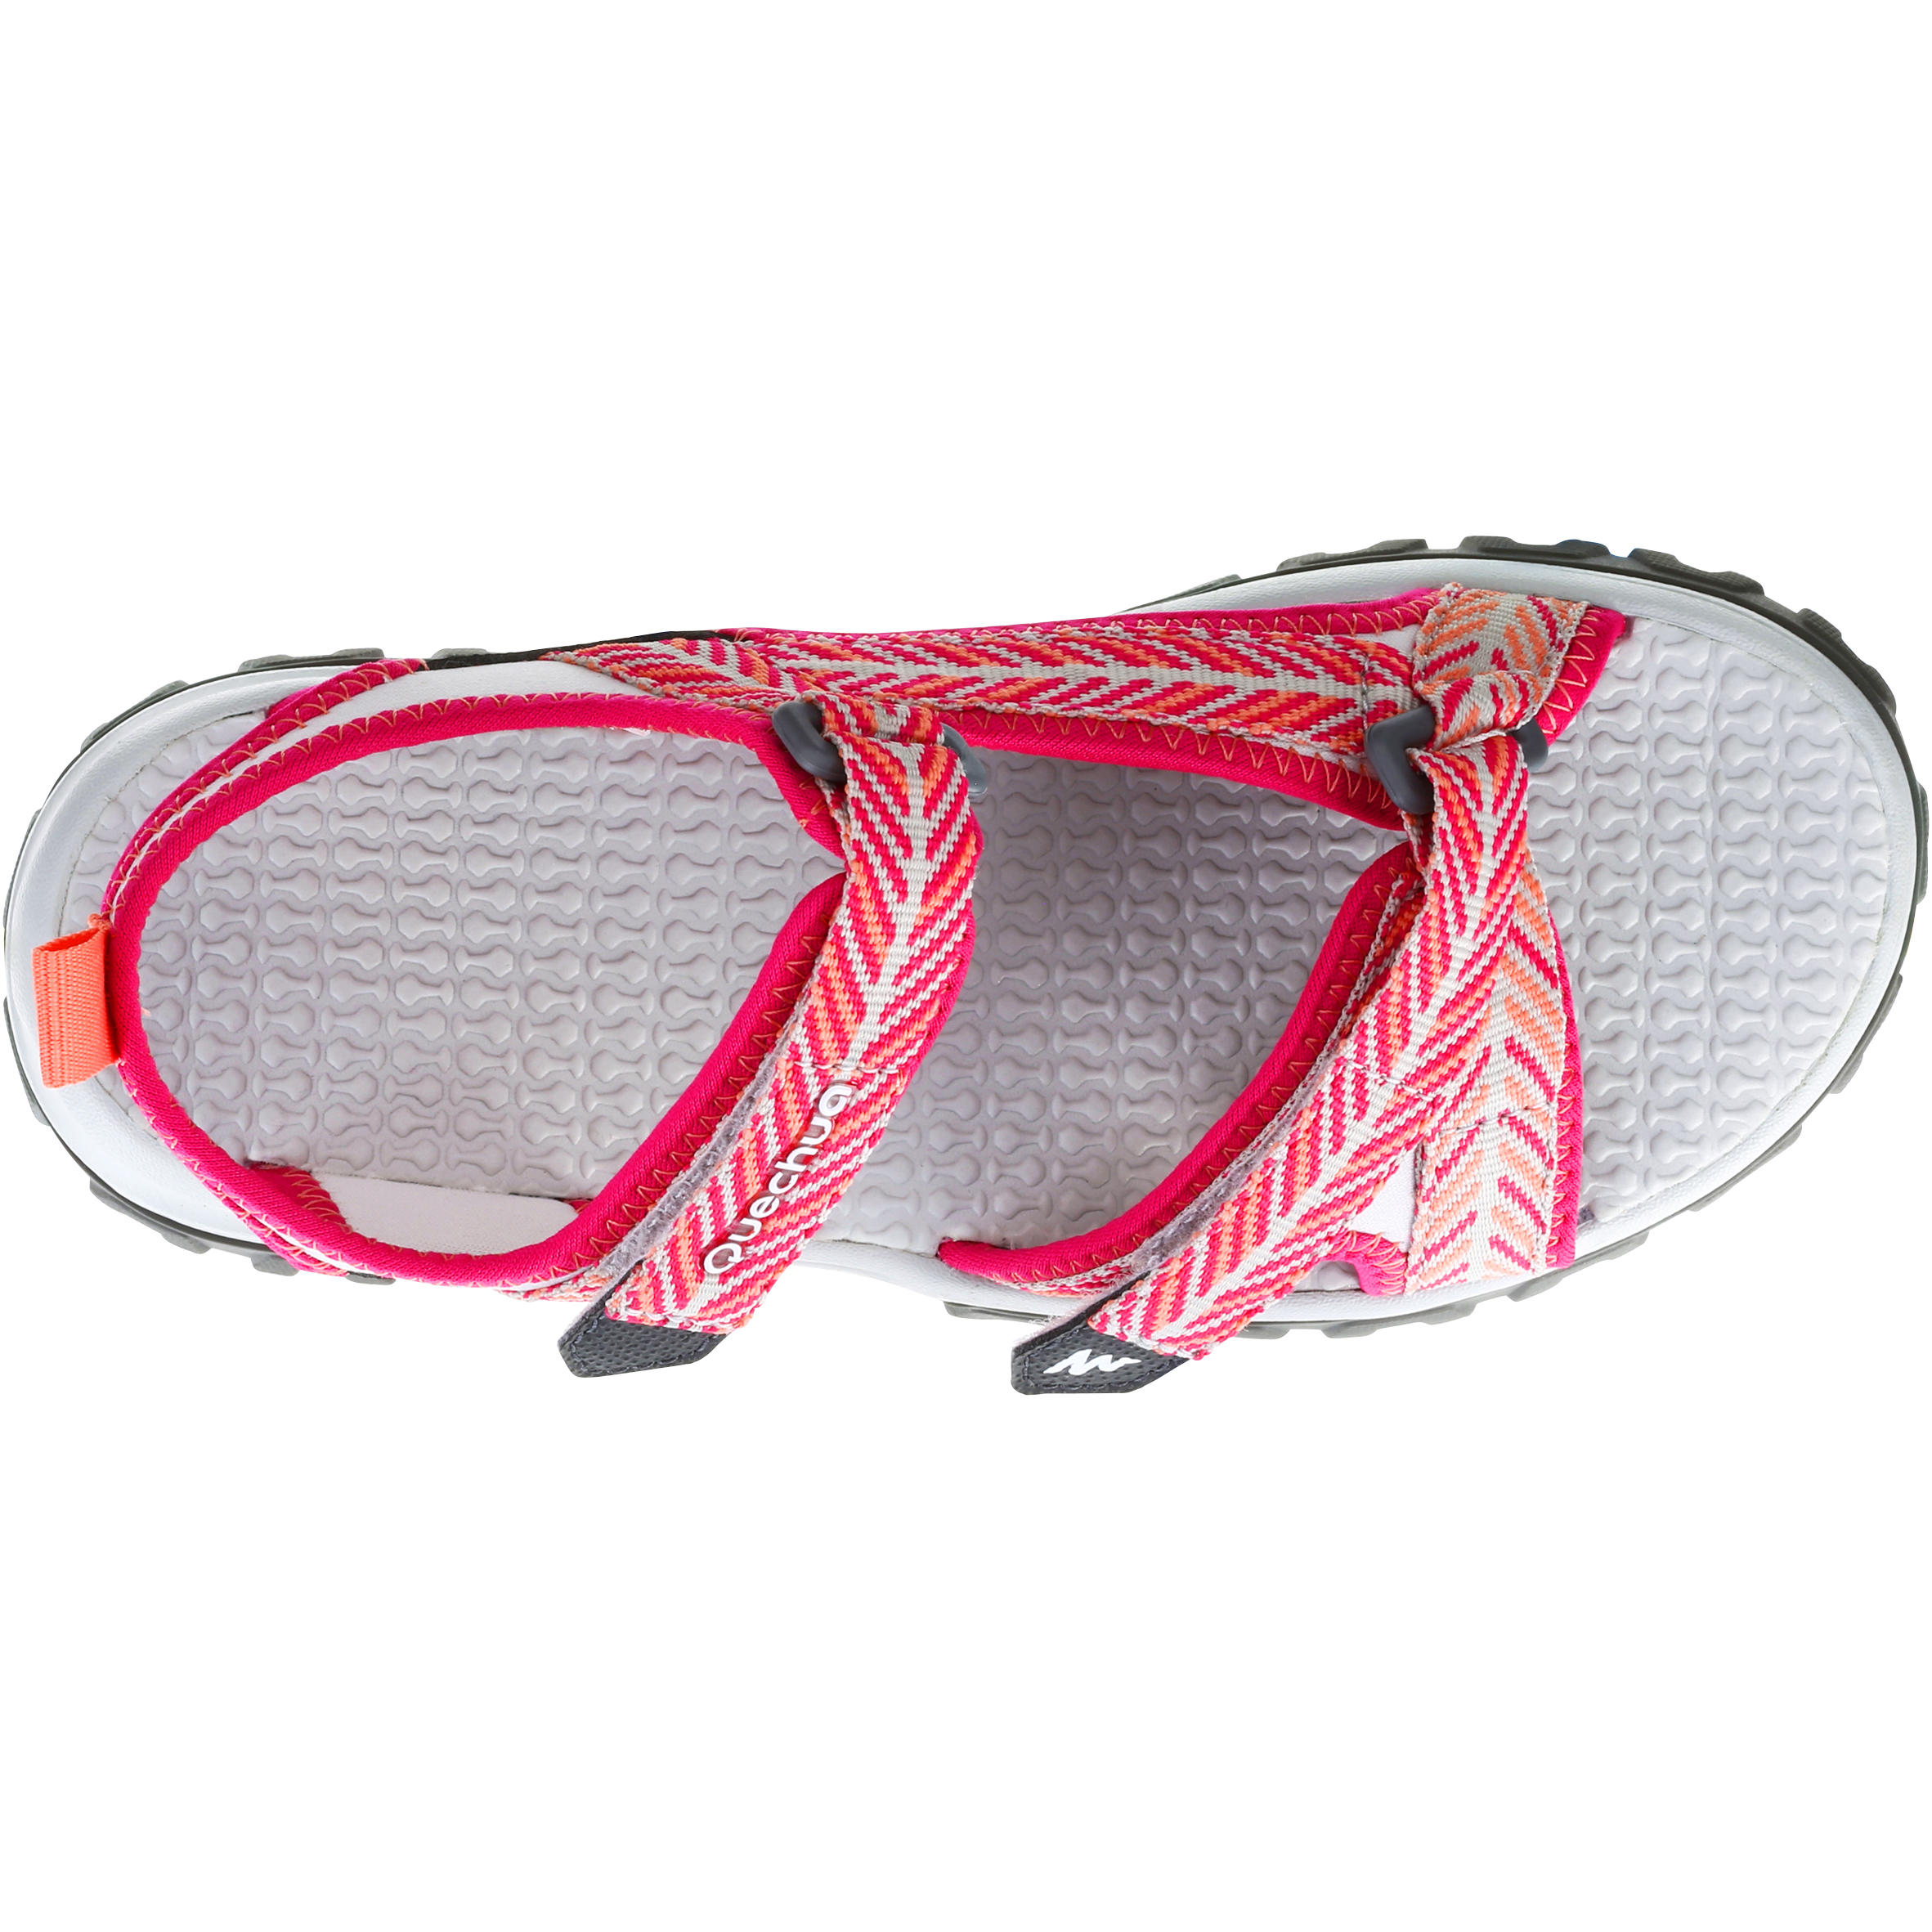 Kid's Sandals MH120 - Pink